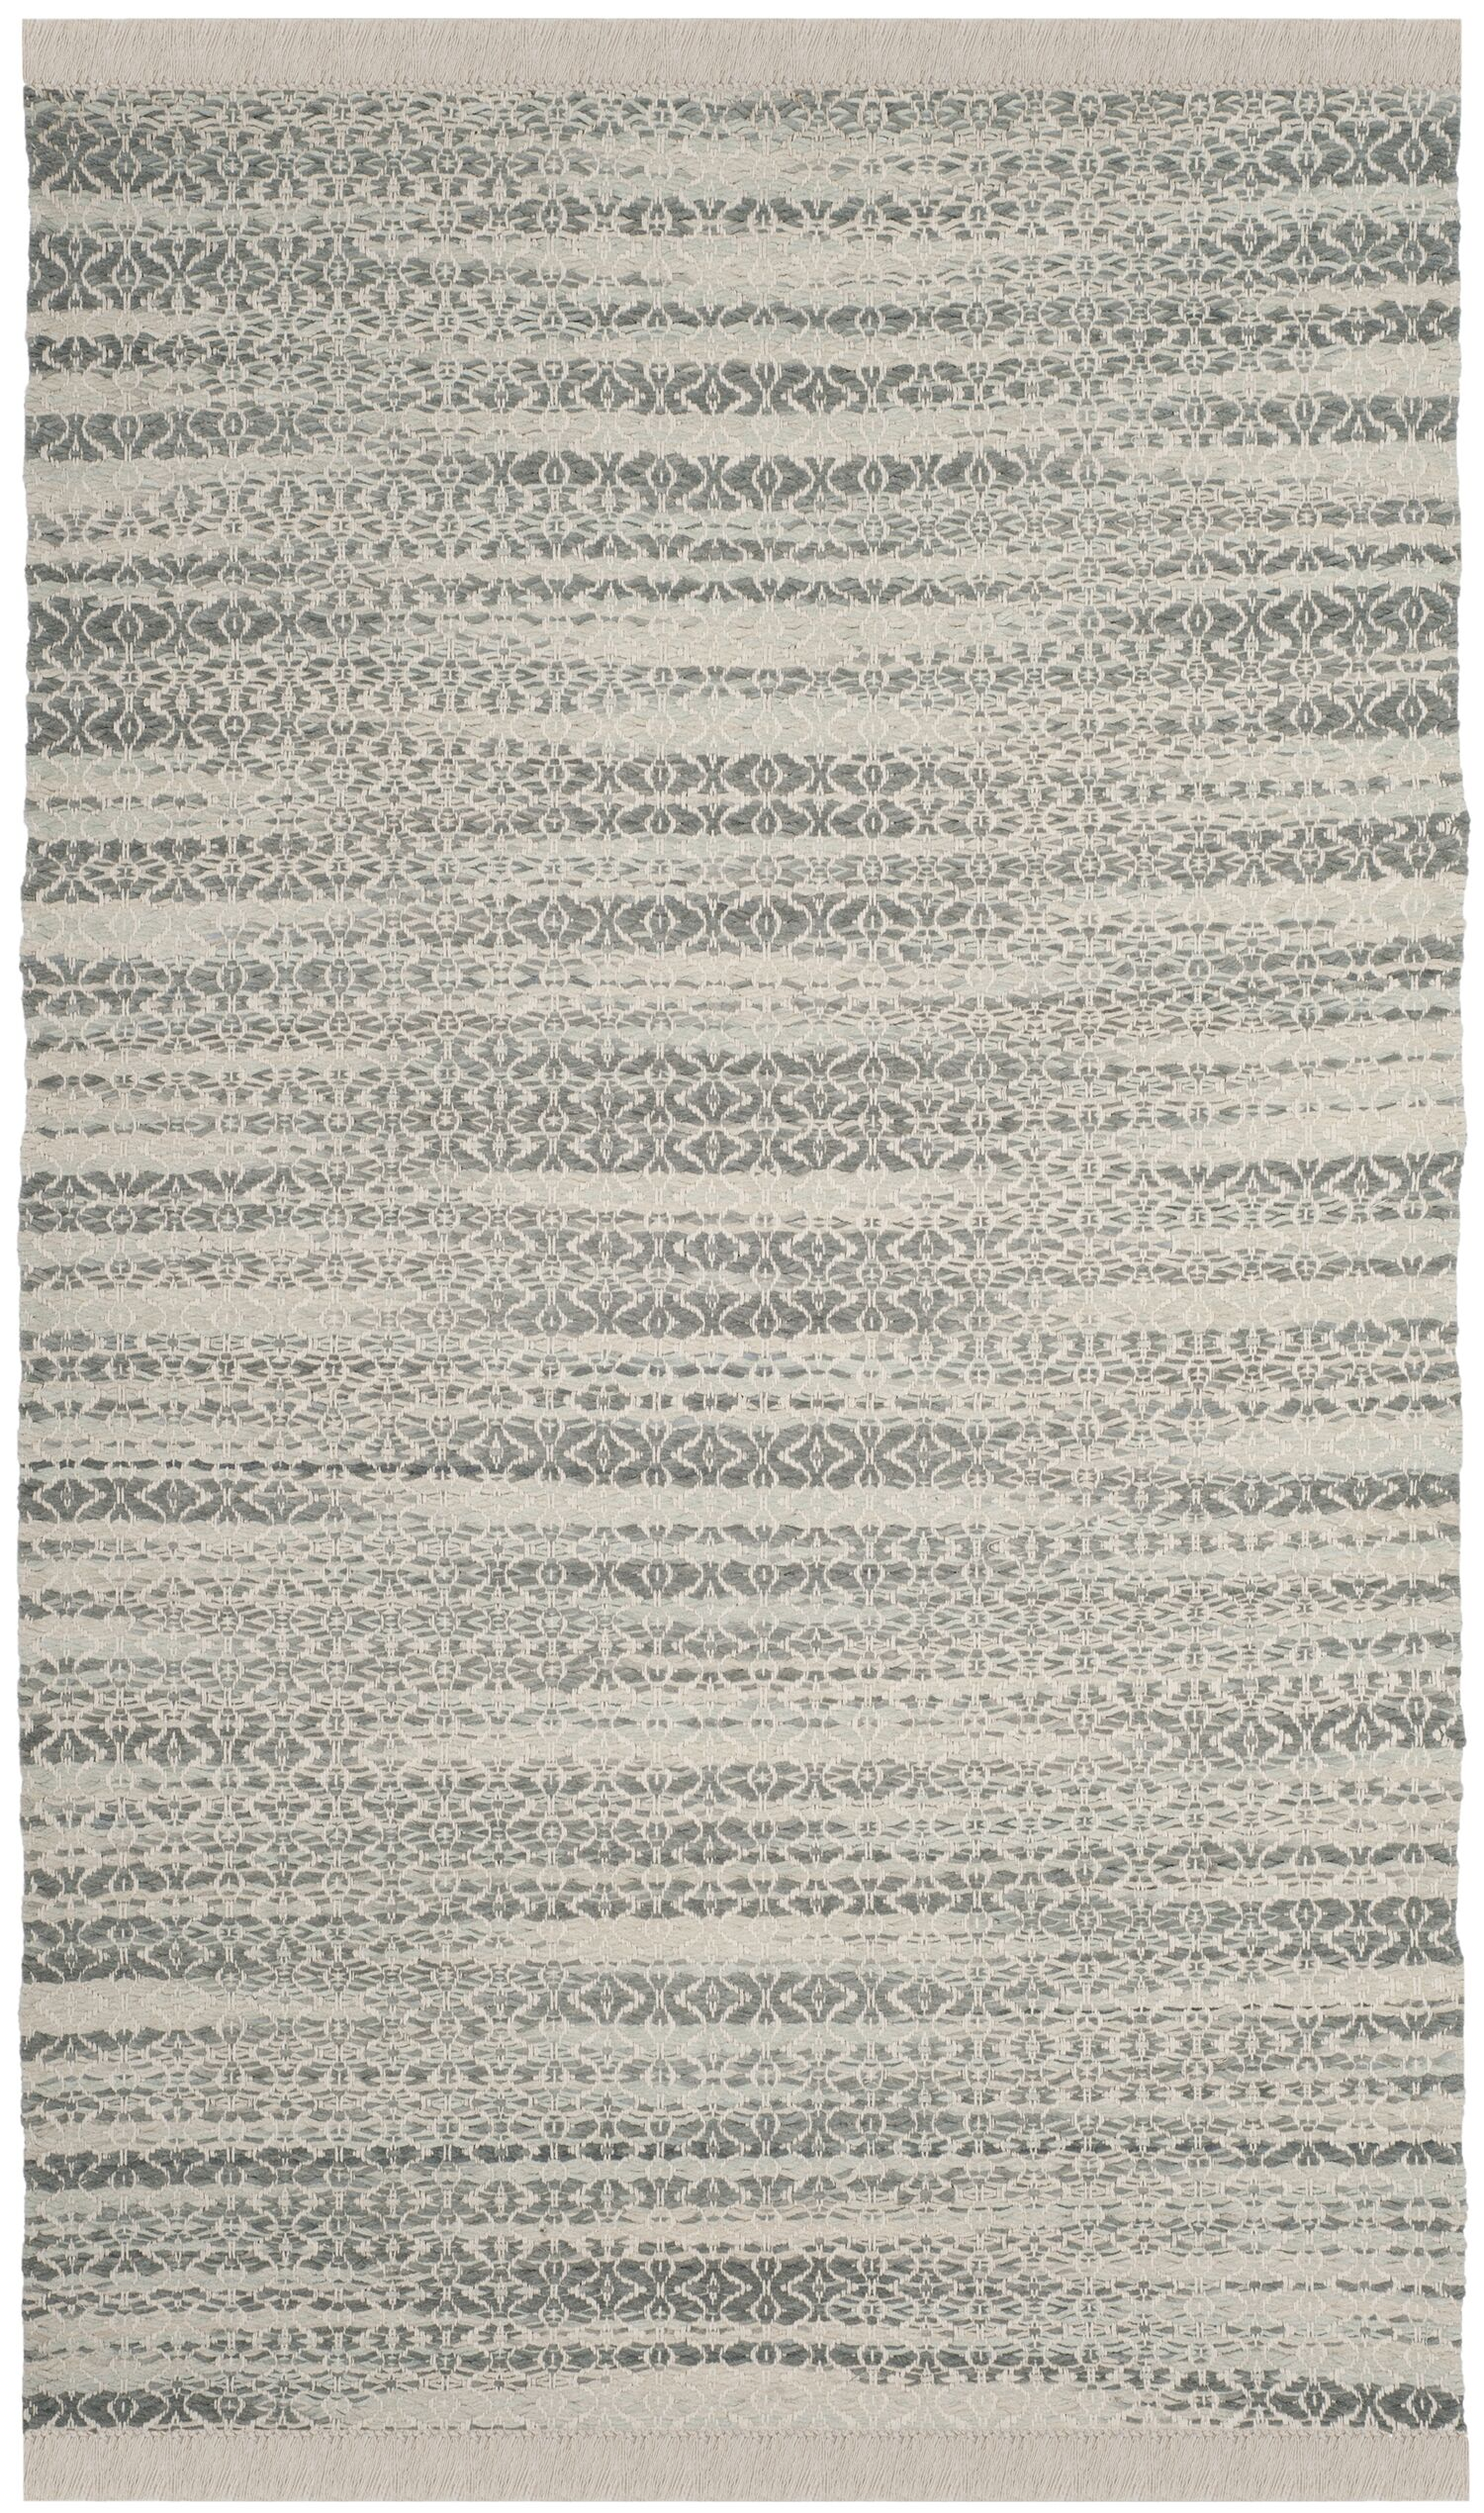 Redbrook  Hand-Tufted Gray/Ivory Area Rug Rug Size: Rectangle 5' x 8'